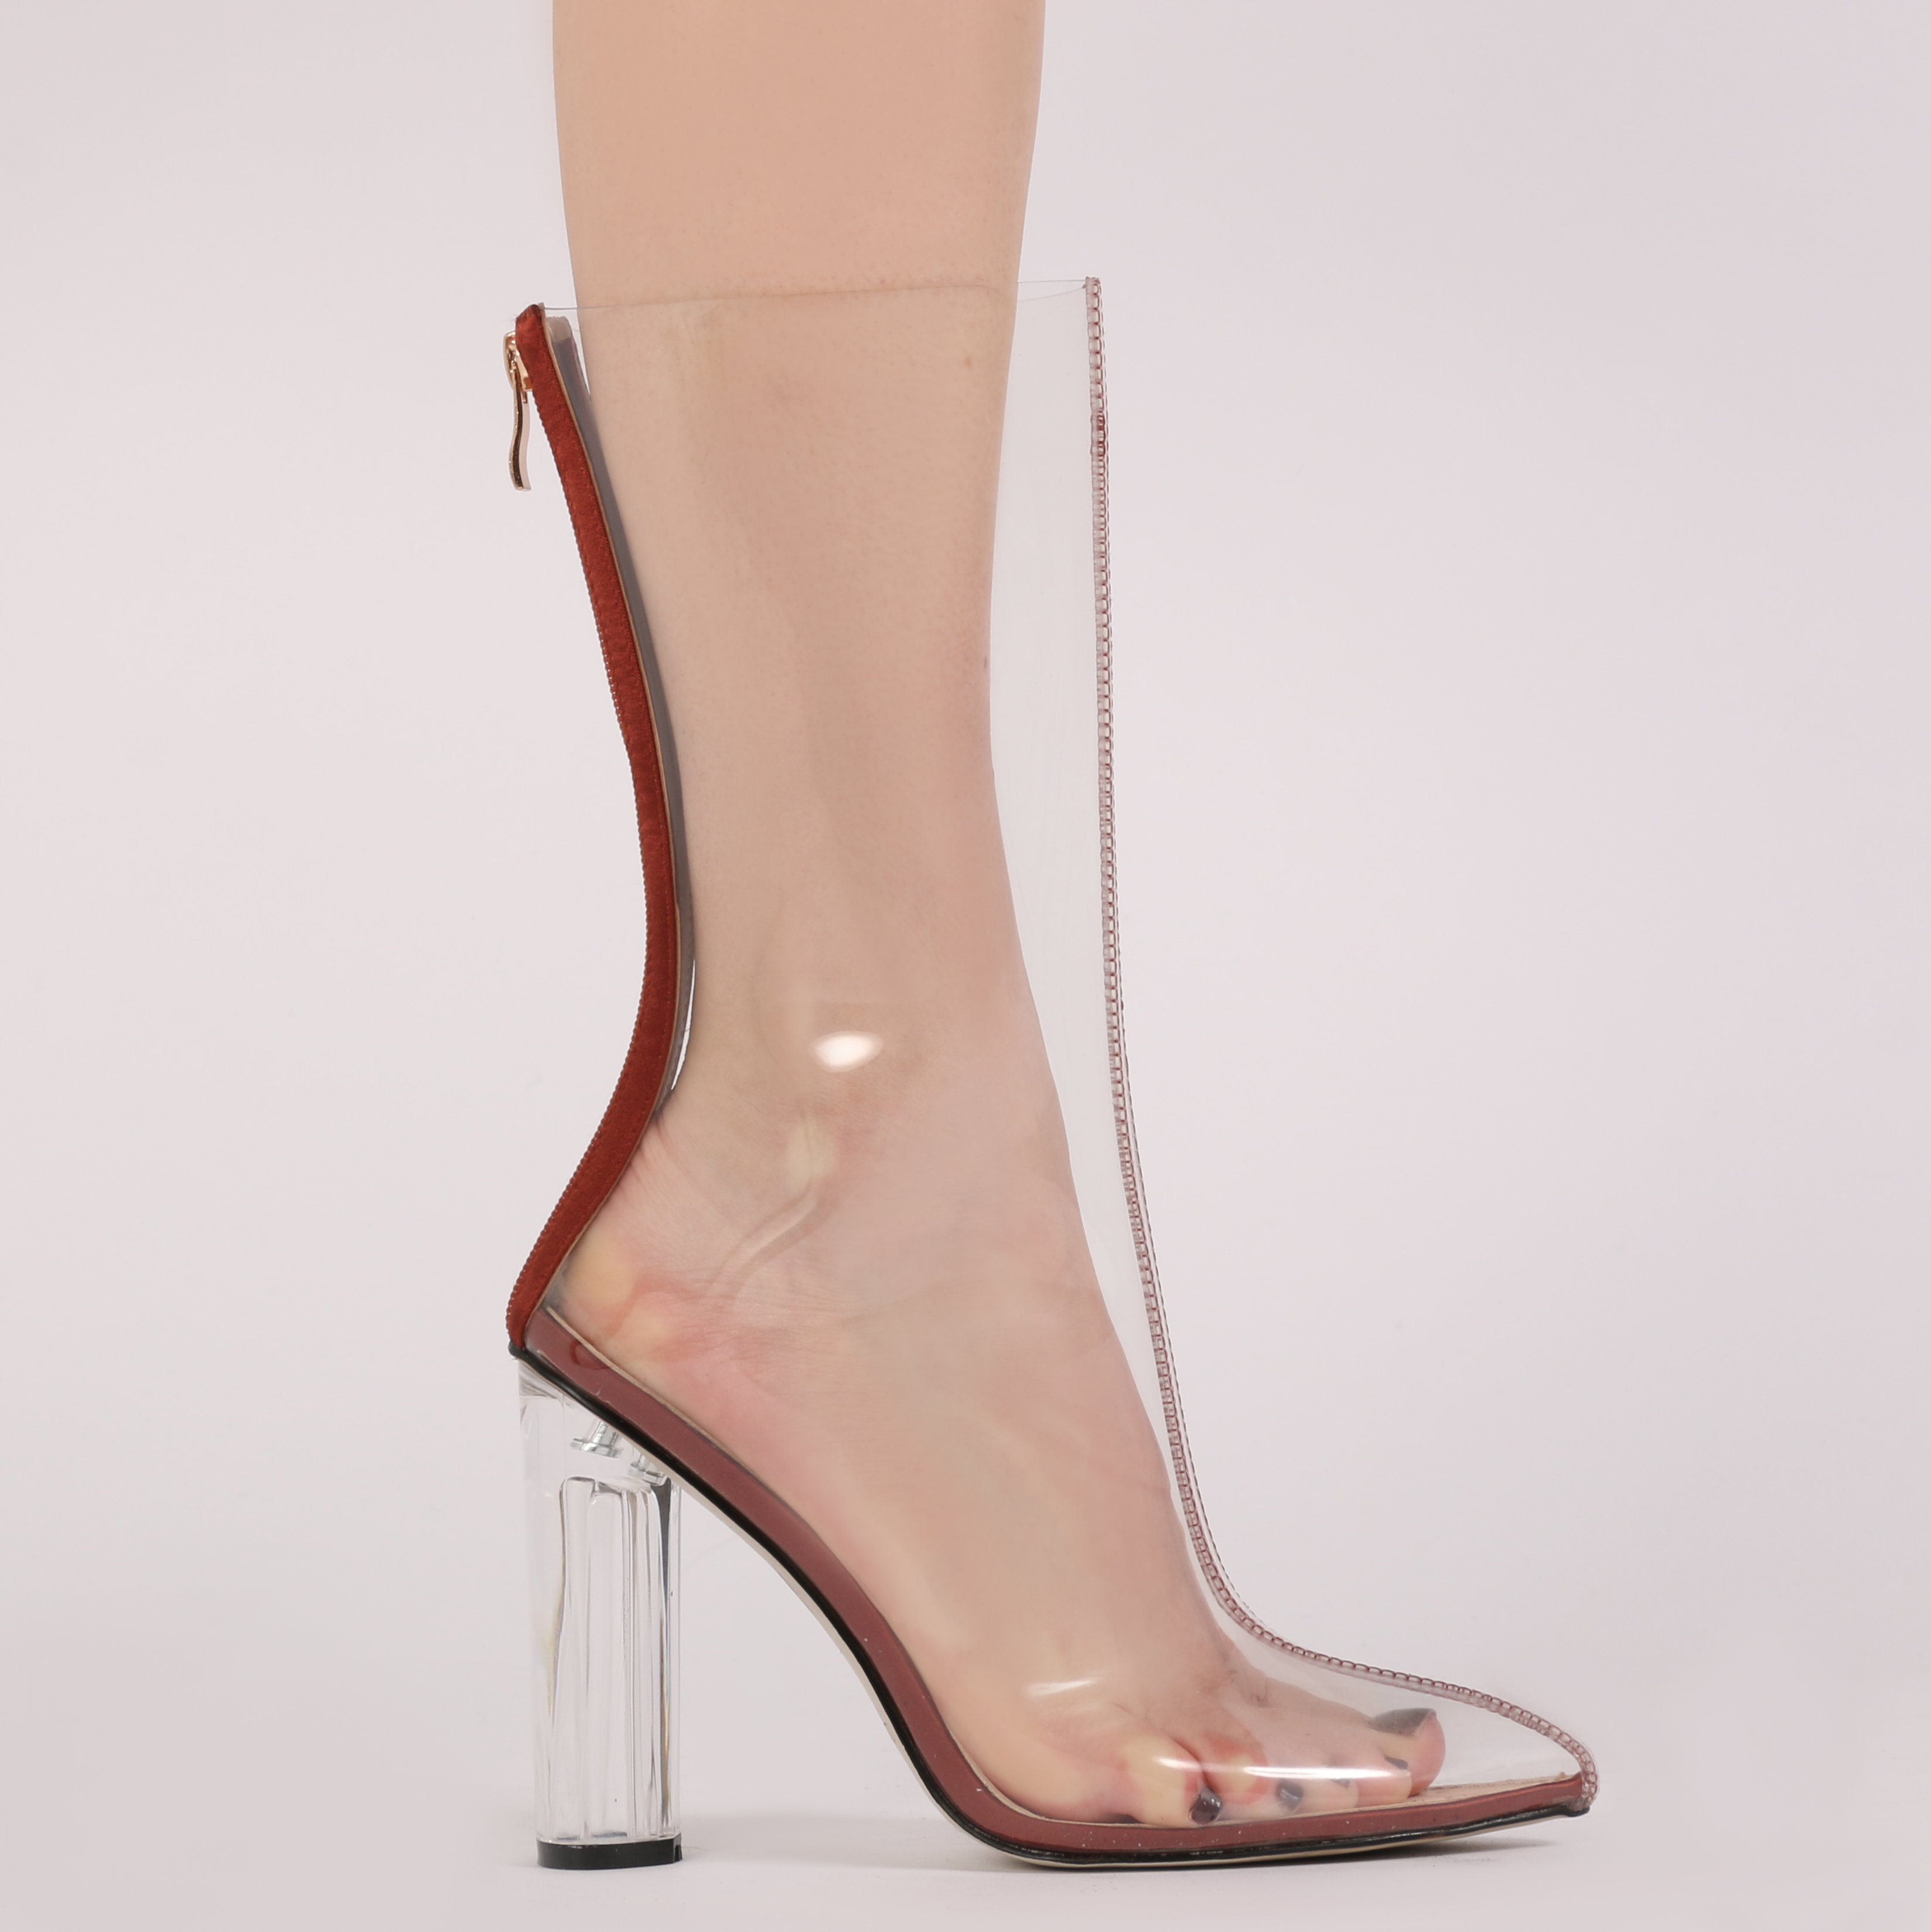 womens zip up see through perspex high heels ankle boots